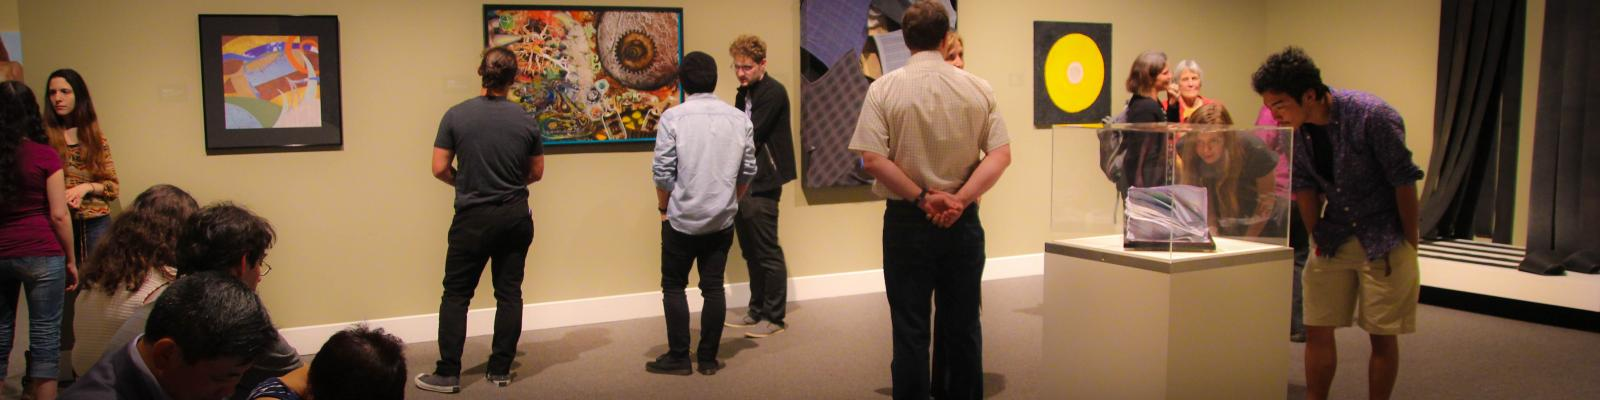 people looking at artwork